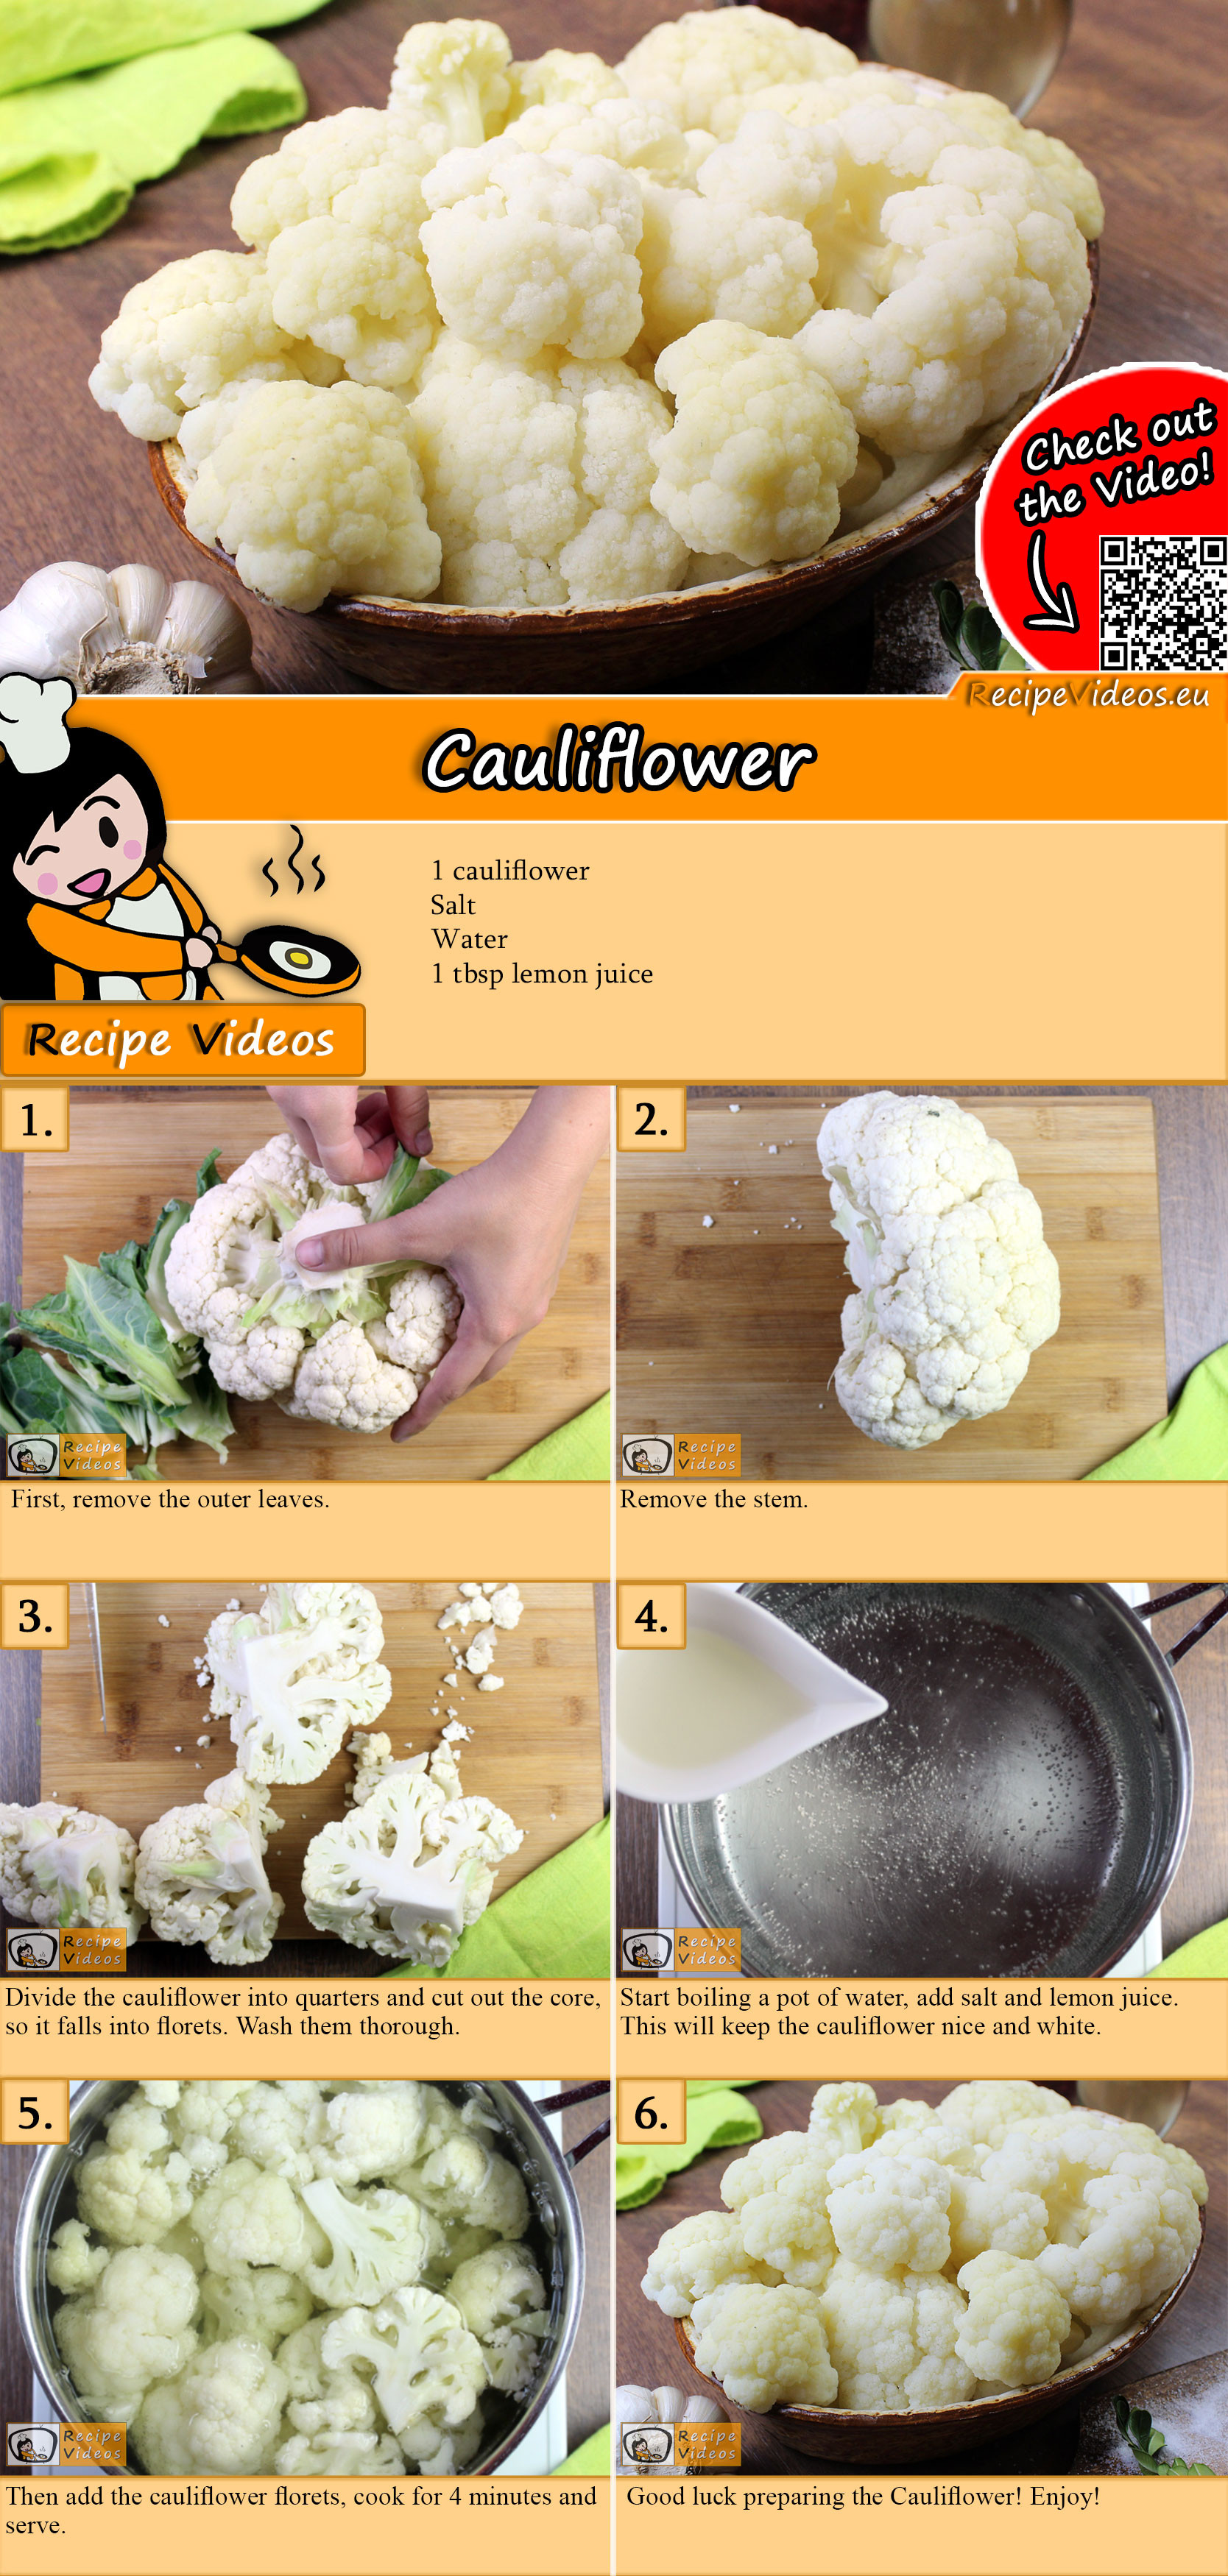 Cauliflower recipe with video